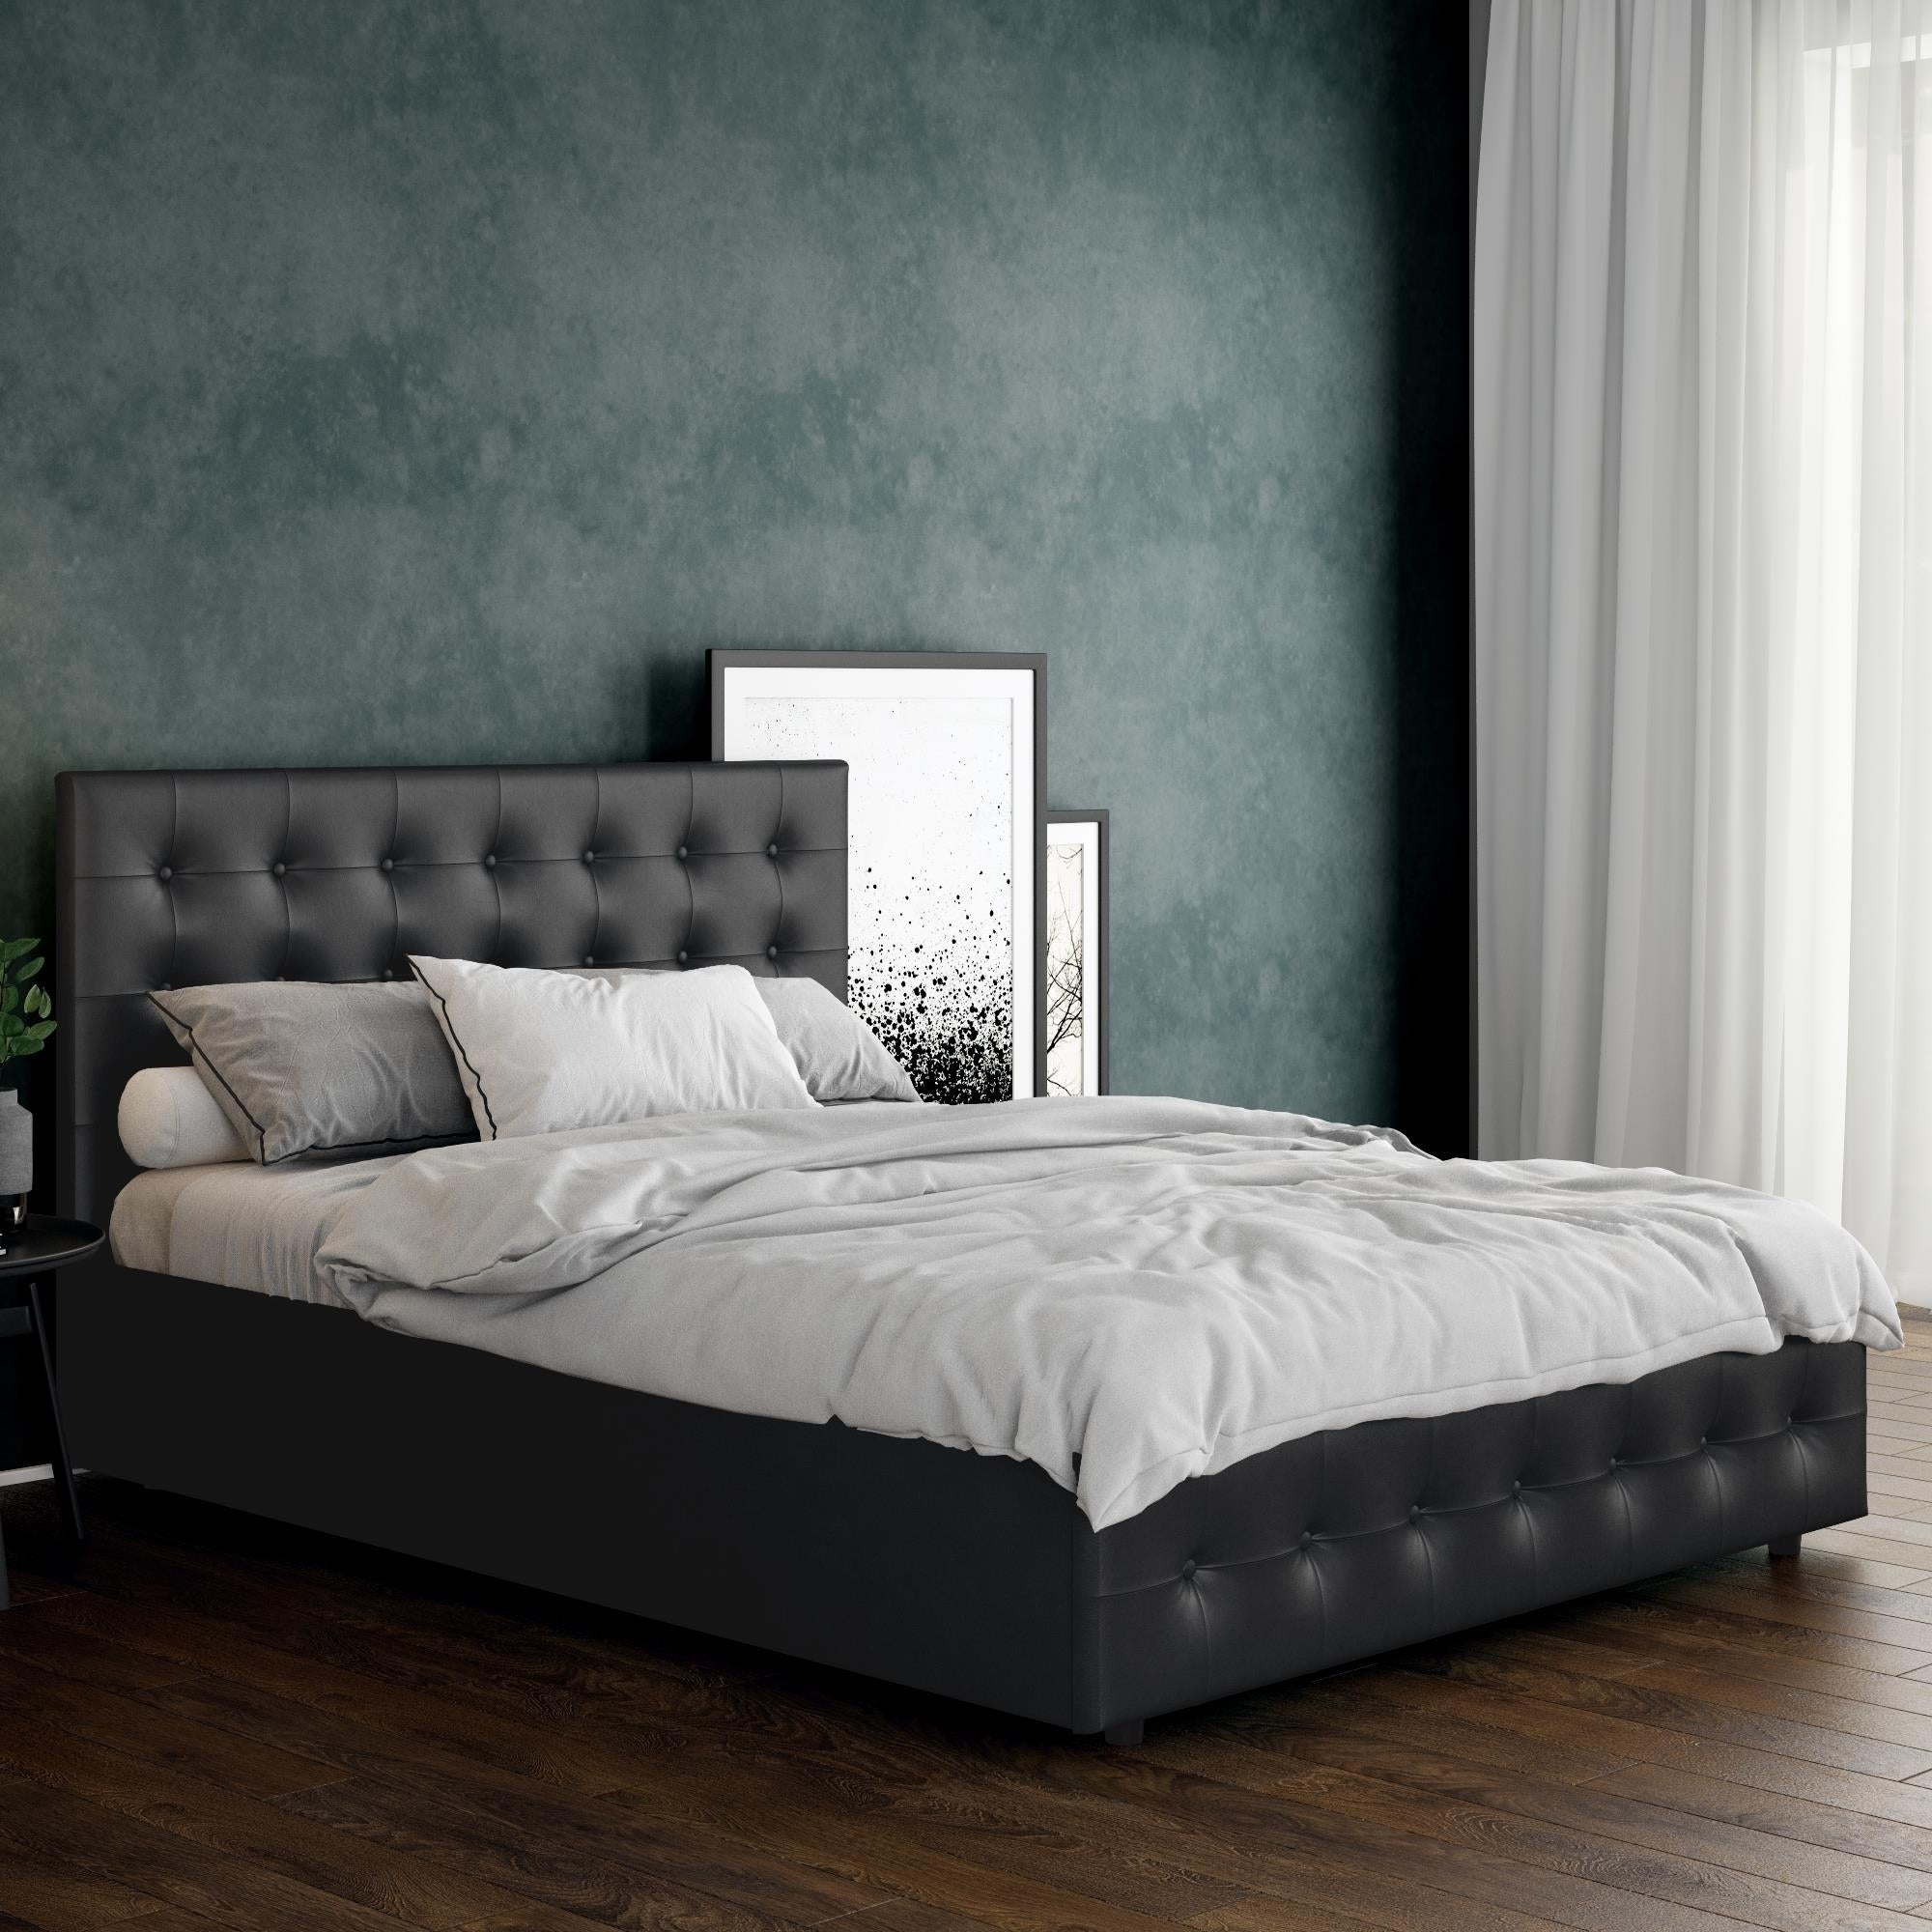 DHP Cambridge Black Faux Leather Upholstered Bed with Sto...